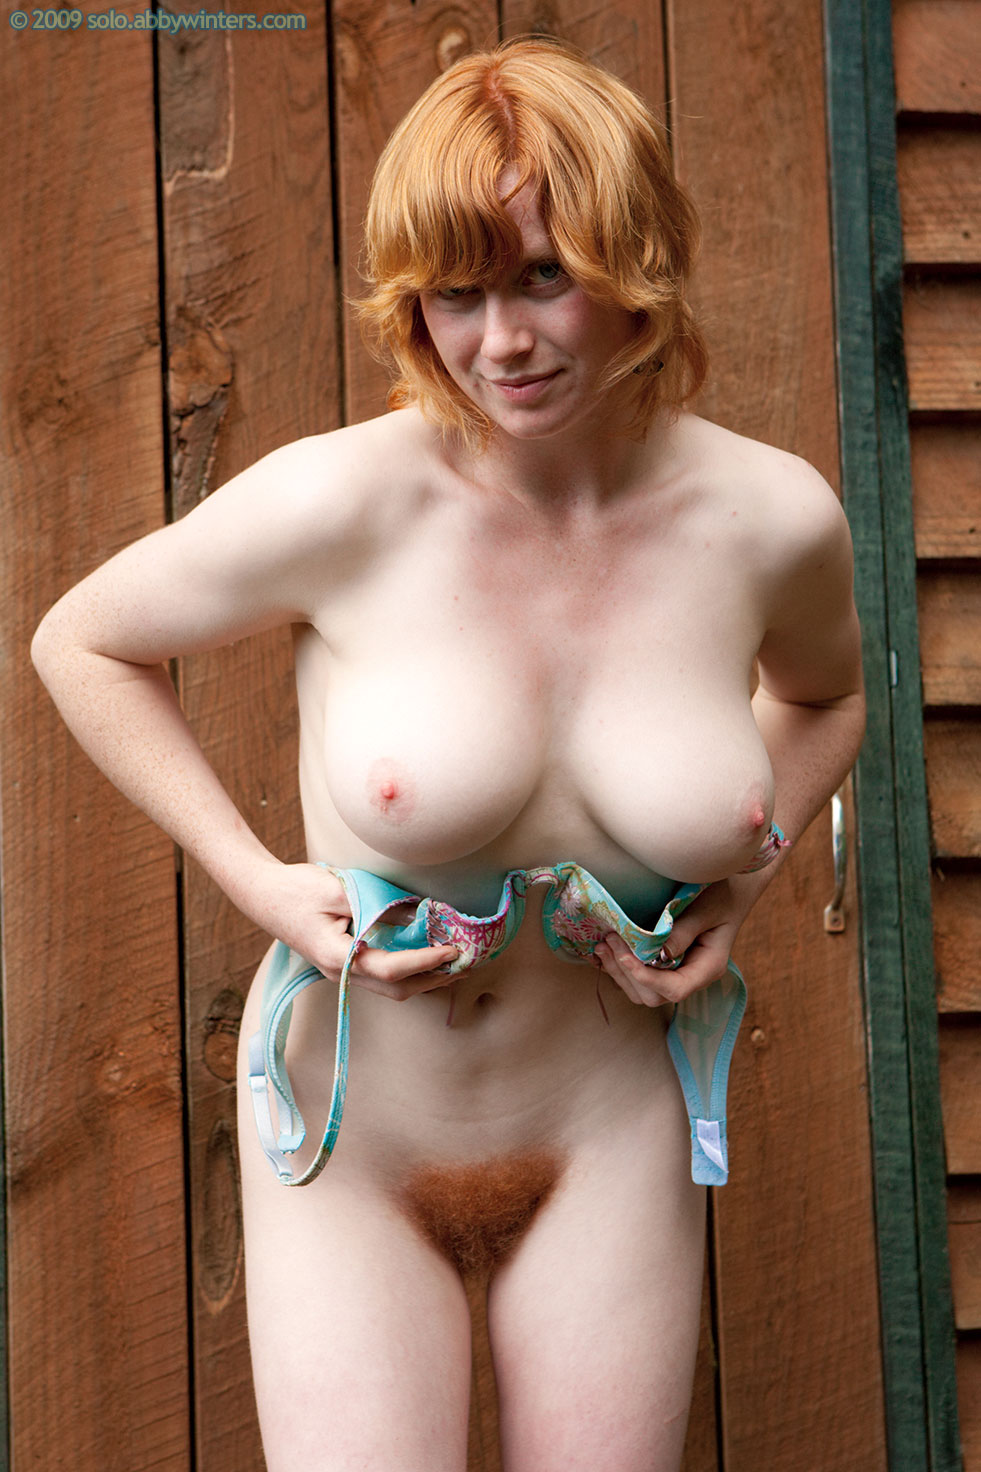 Champion dick plump redhead fire needs pussy when